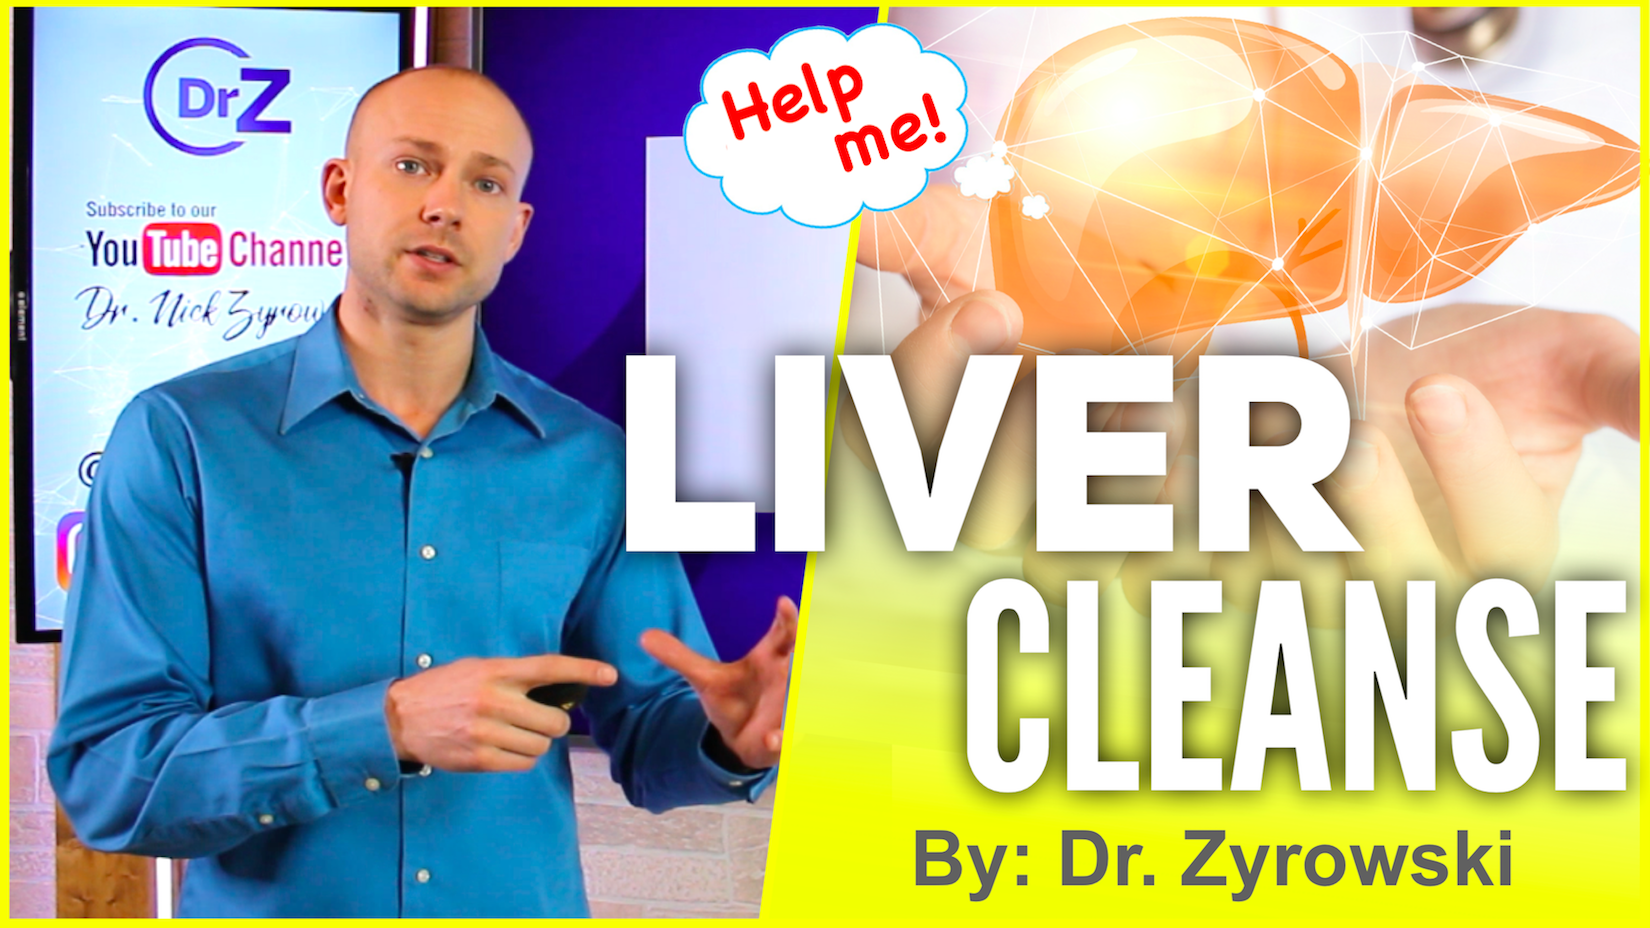 Cleanse The Liver